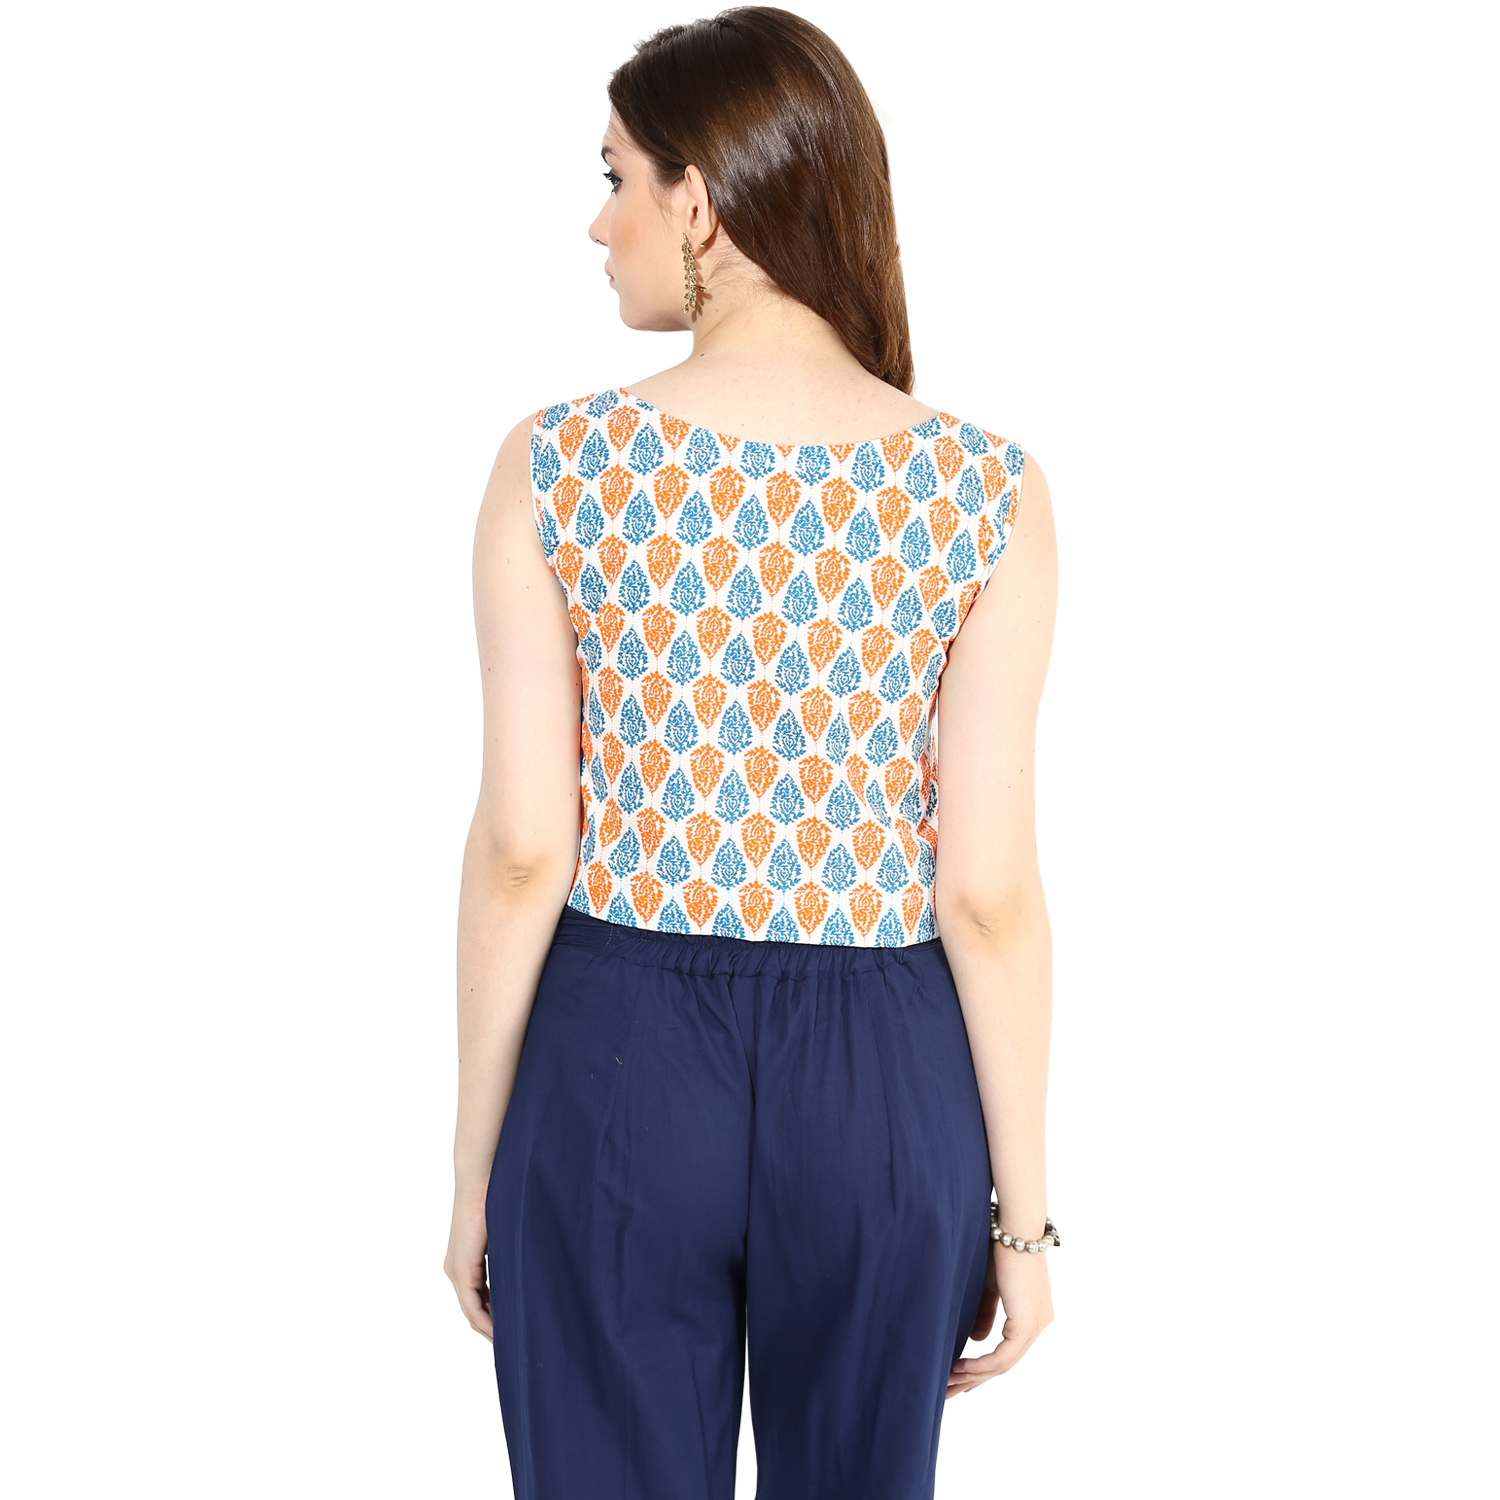 Orange Blue screen-printed crop top (INDI-074S)